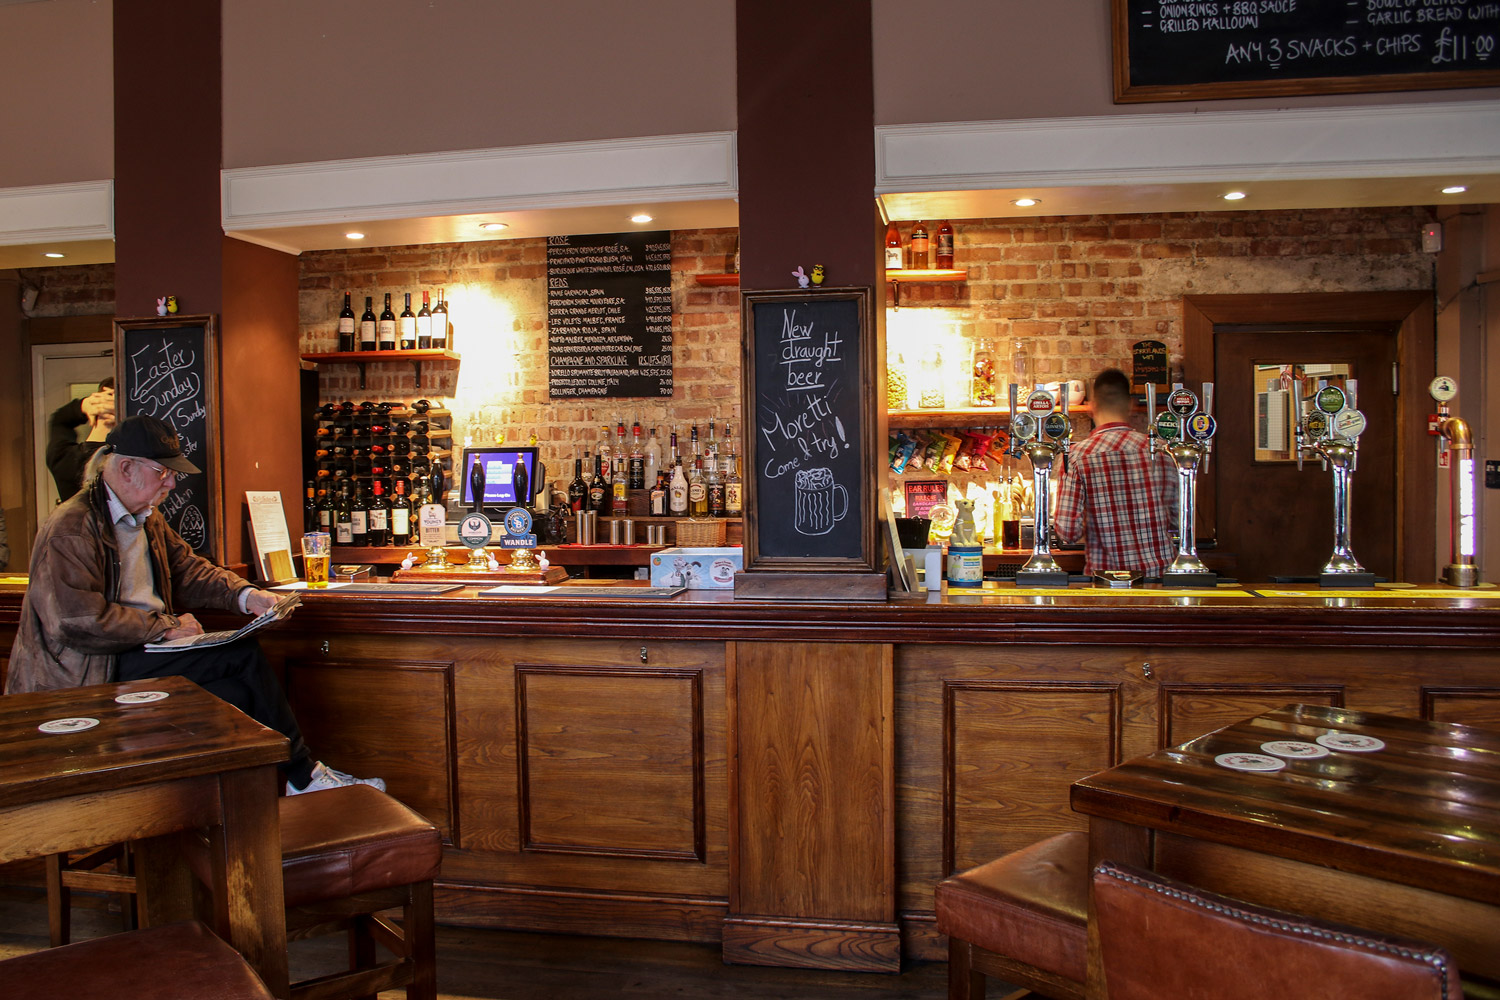 The bar at The Berrylands Pub Restaurant - Wide range of beers, ciders, ales and wines